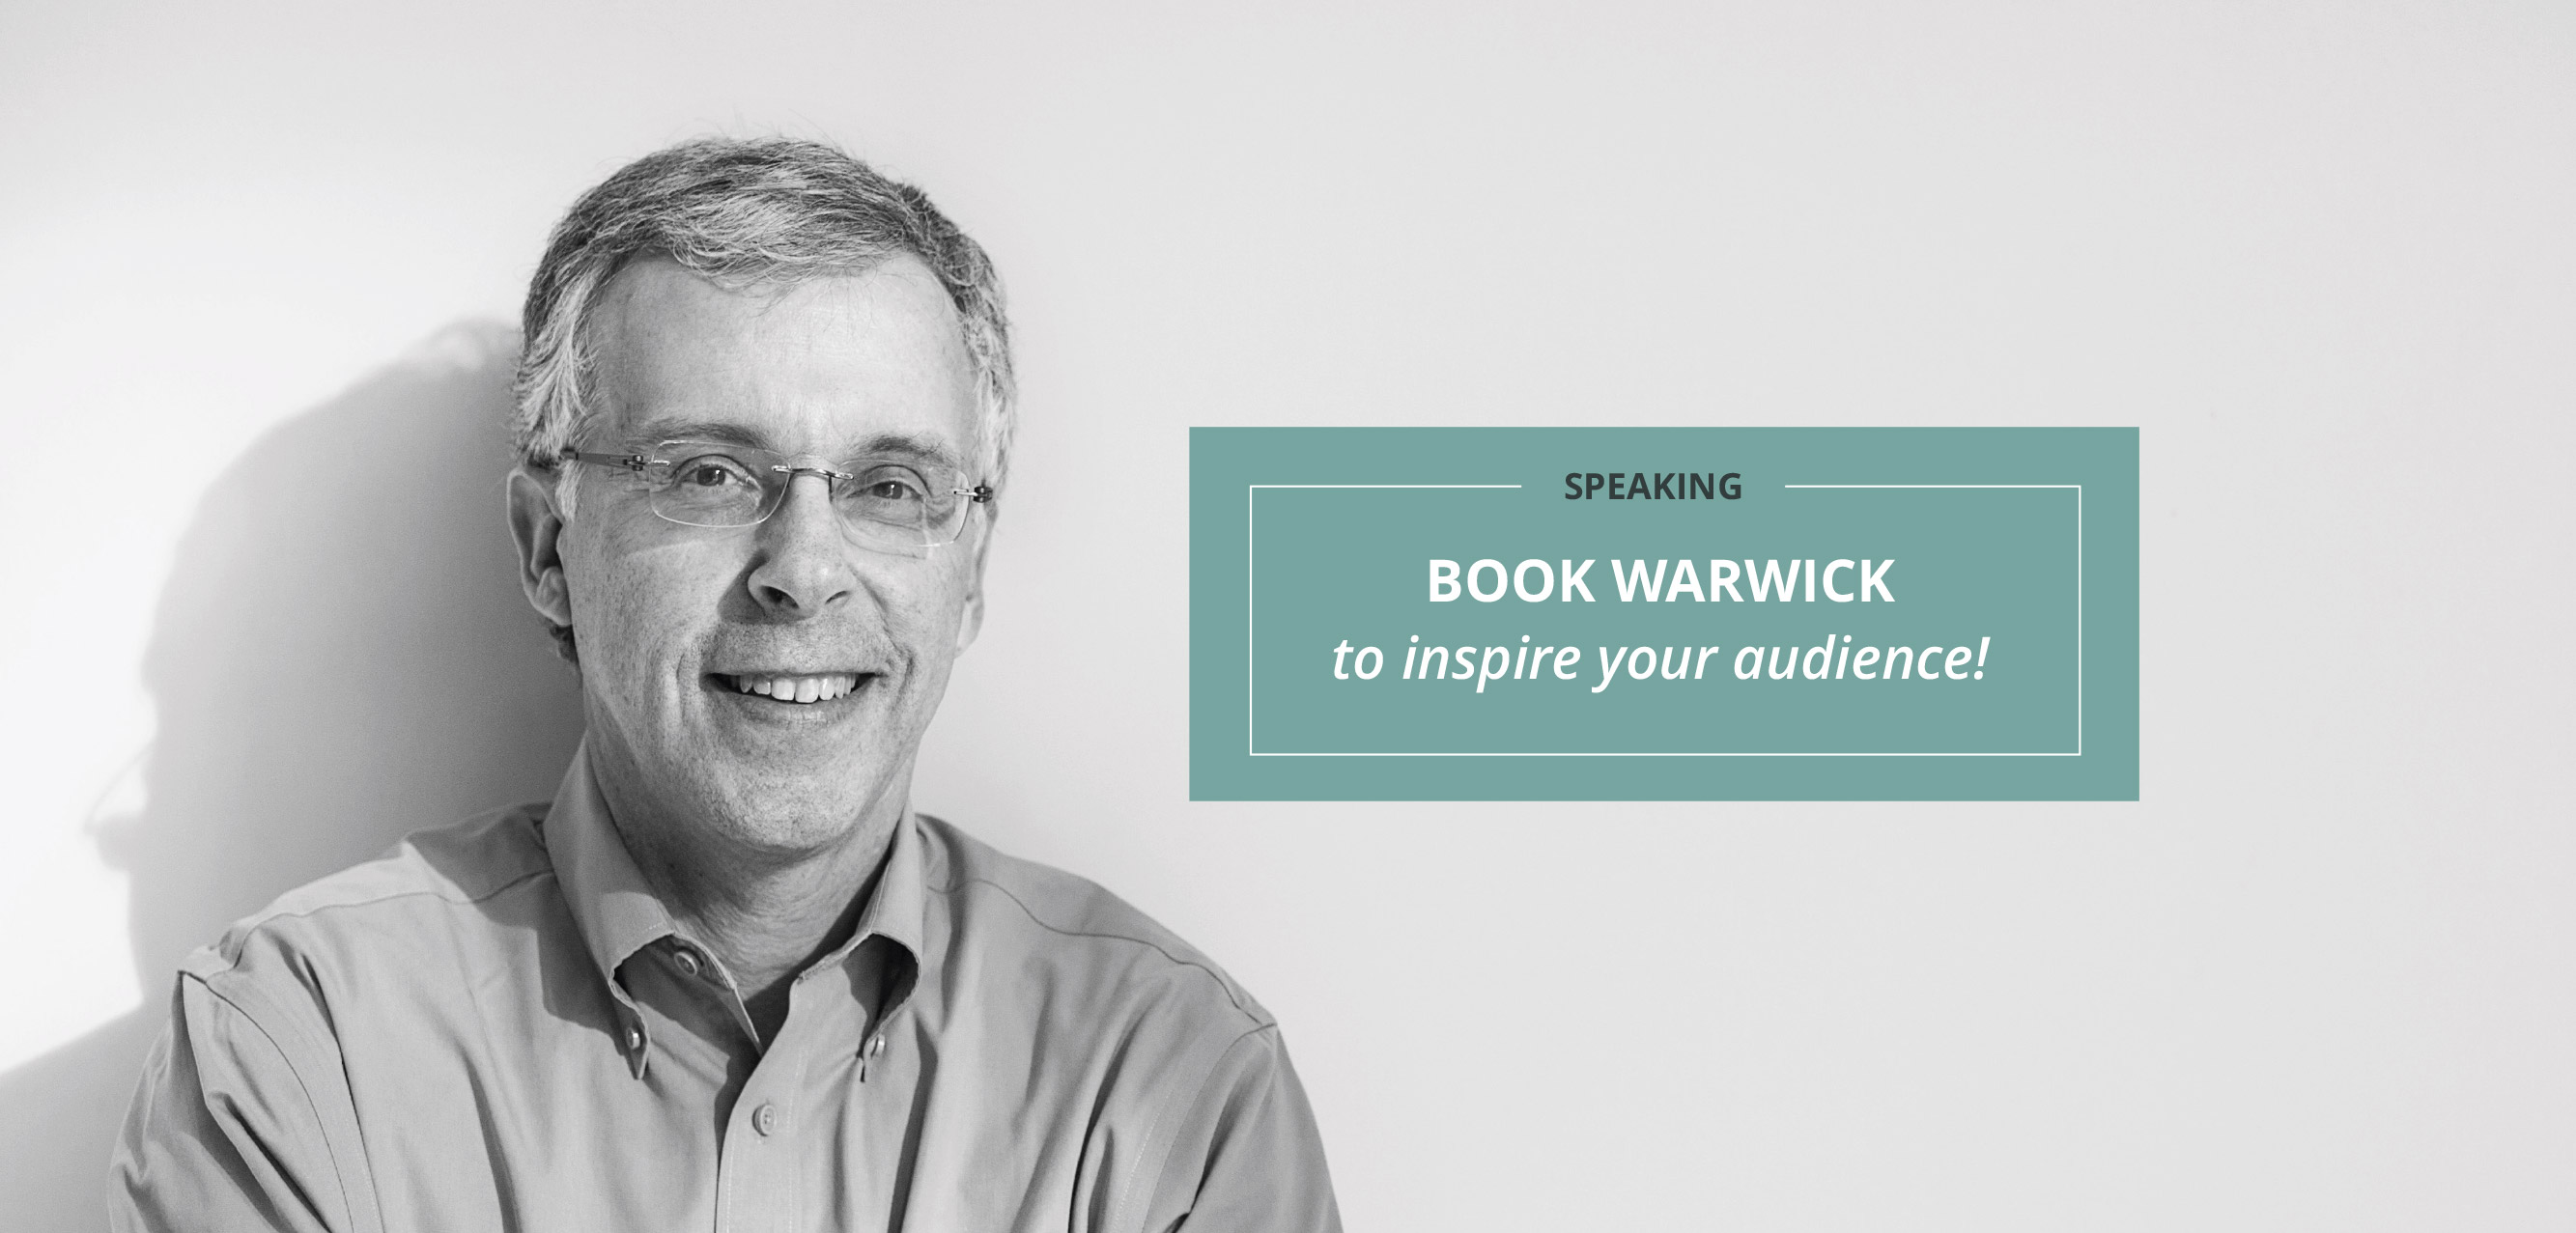 Book Warwick to inspire your audience